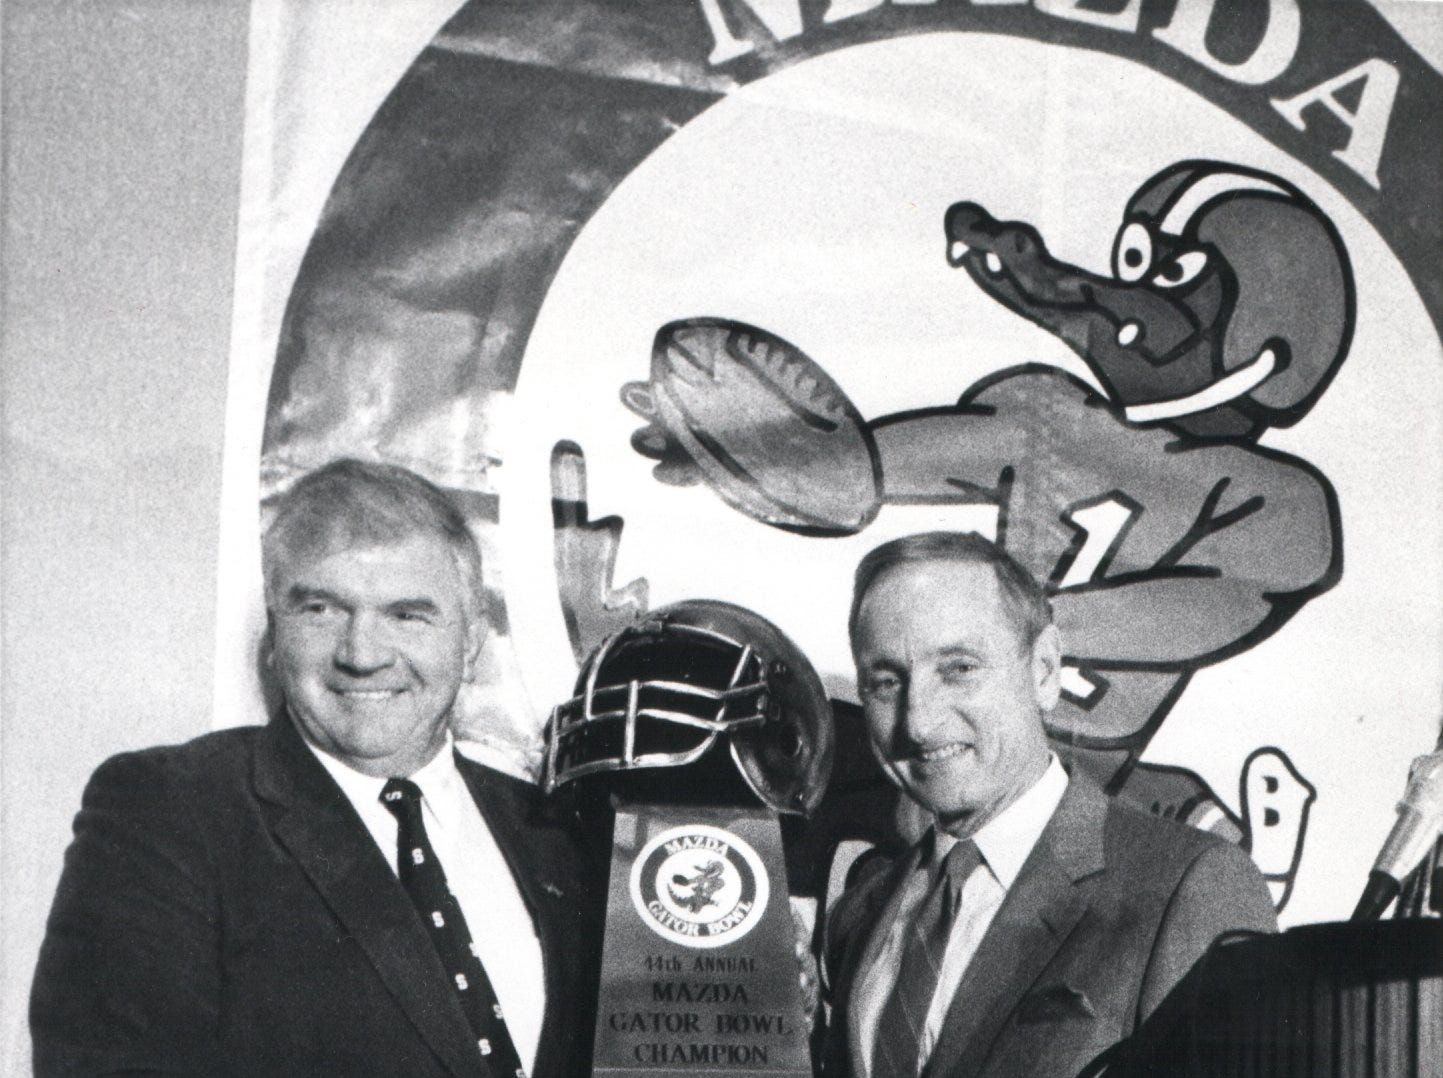 MSU head coach George Perles and Georgia head coach Vince Dooley pose with the Mazda Gator Bowl Trophy before a coaches luncheon at the downtown Sheraton in Jacksonville. Michigan Governor James Blanchard was also in attendance, Nov. 30, 1989.